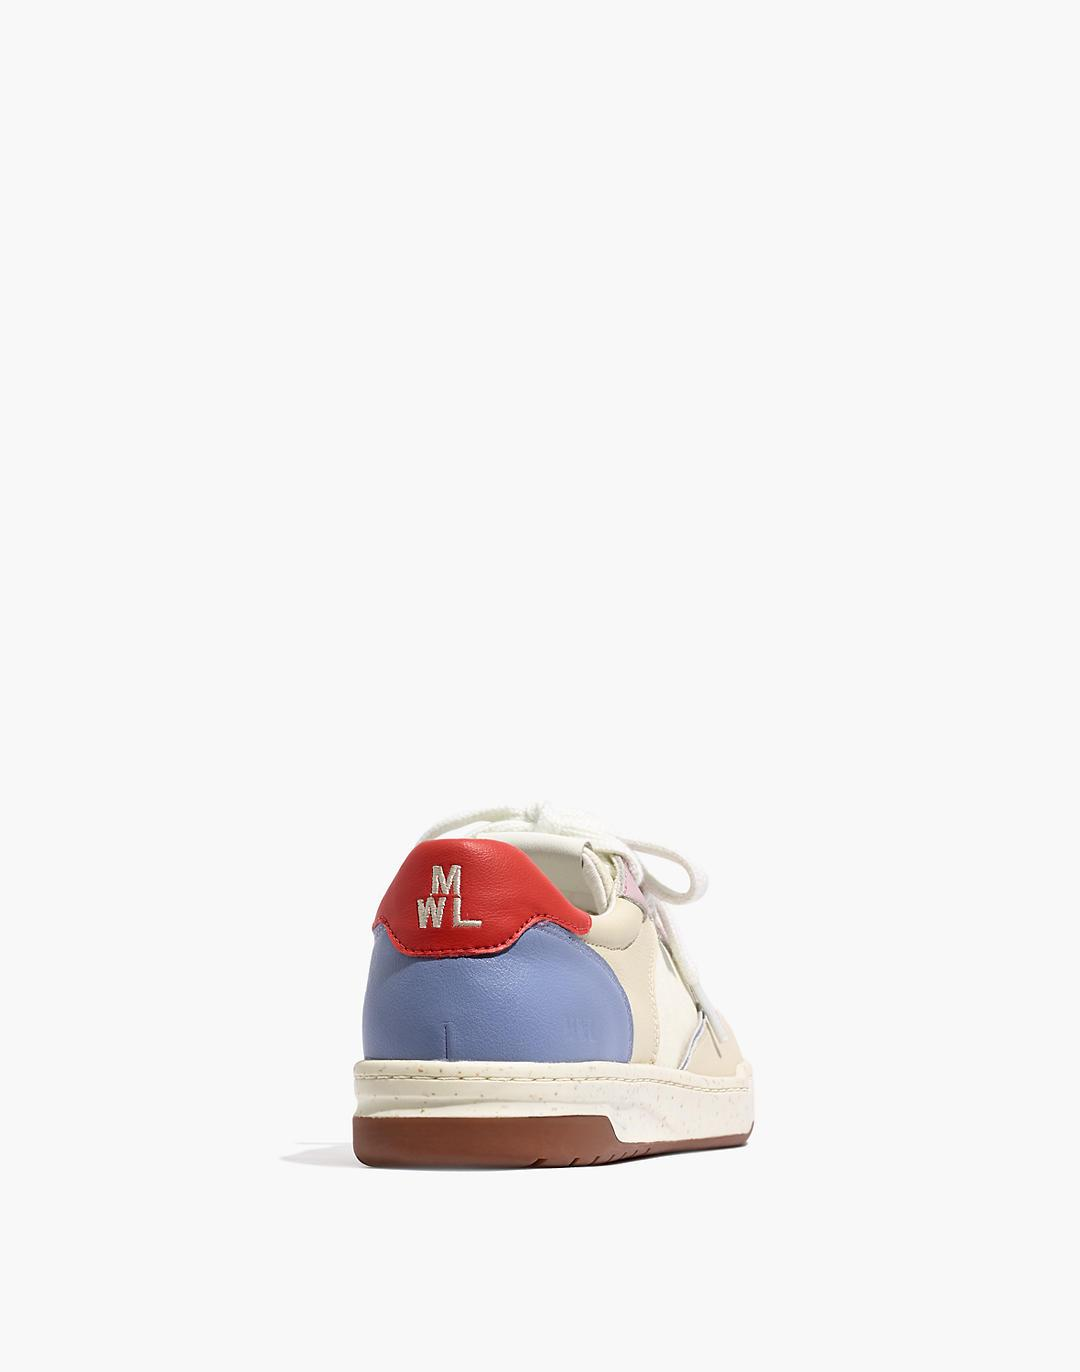 Court Sneakers in Colorblock Leather and Nubuck 2